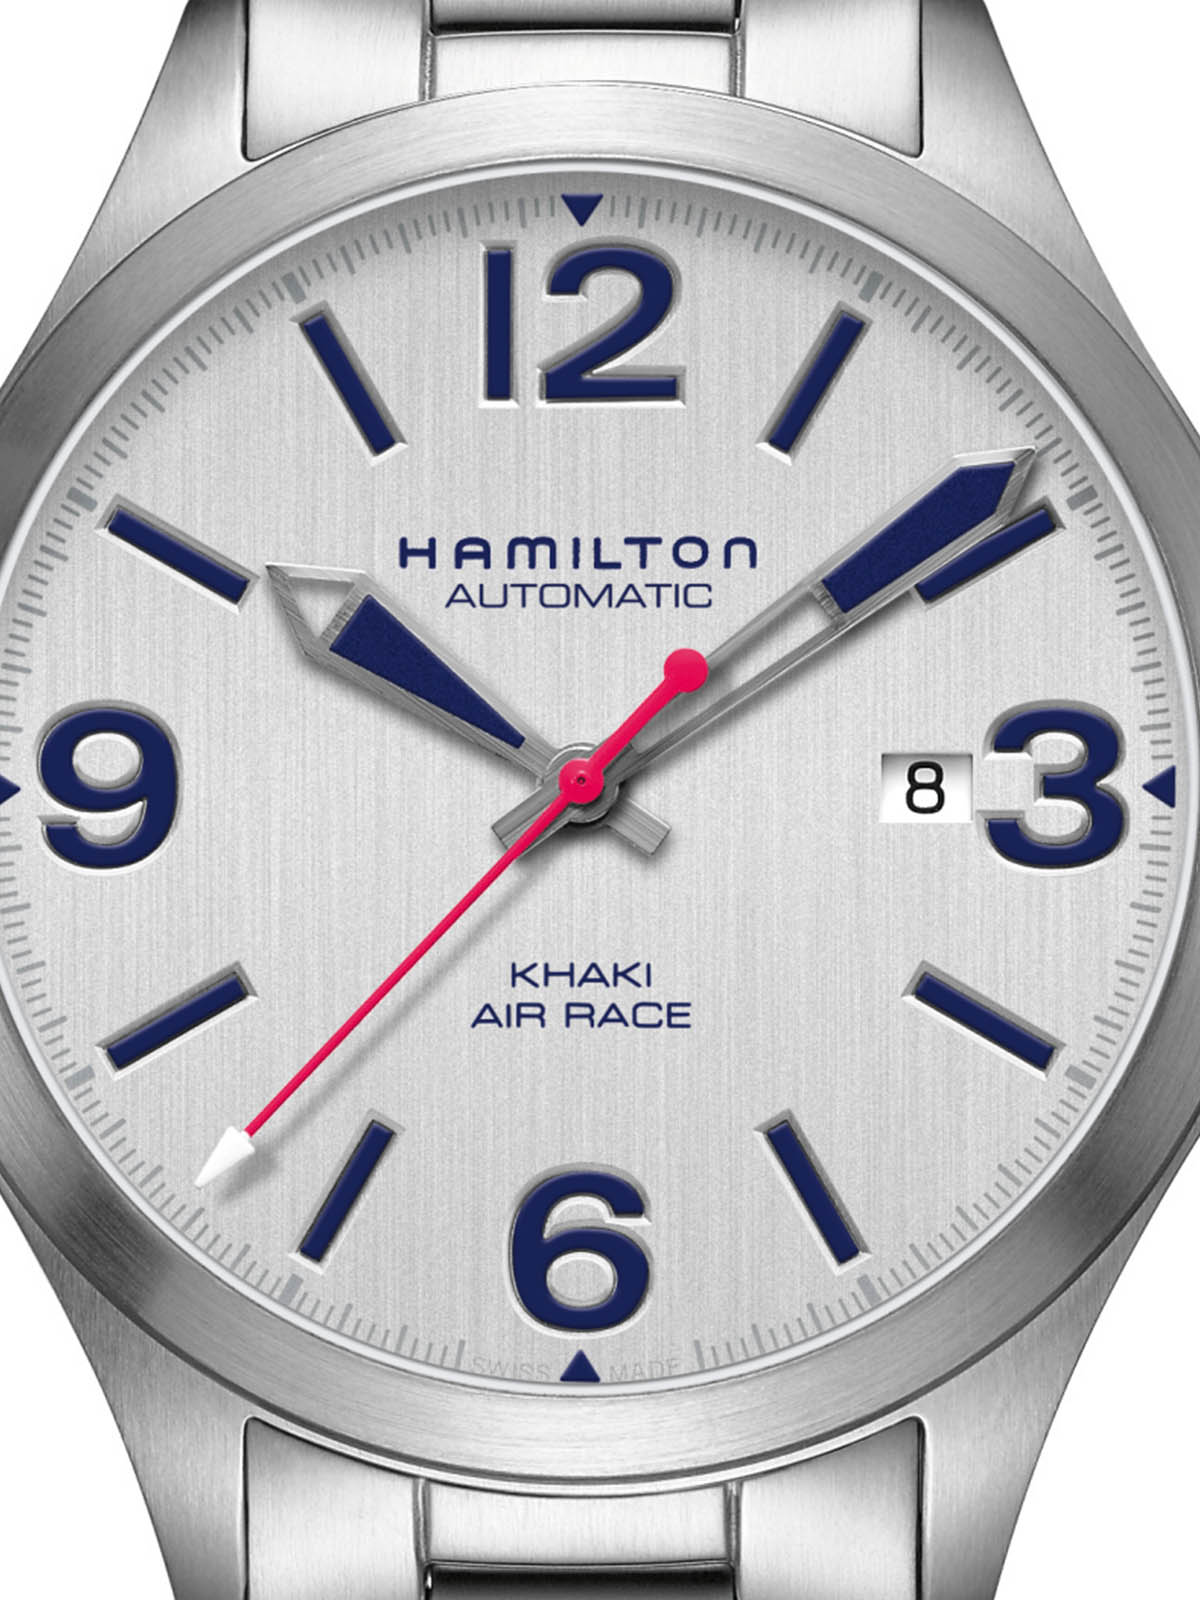 Hamilton-Khaki-Air-Race-Red-Bull-H76525151-3.jpg